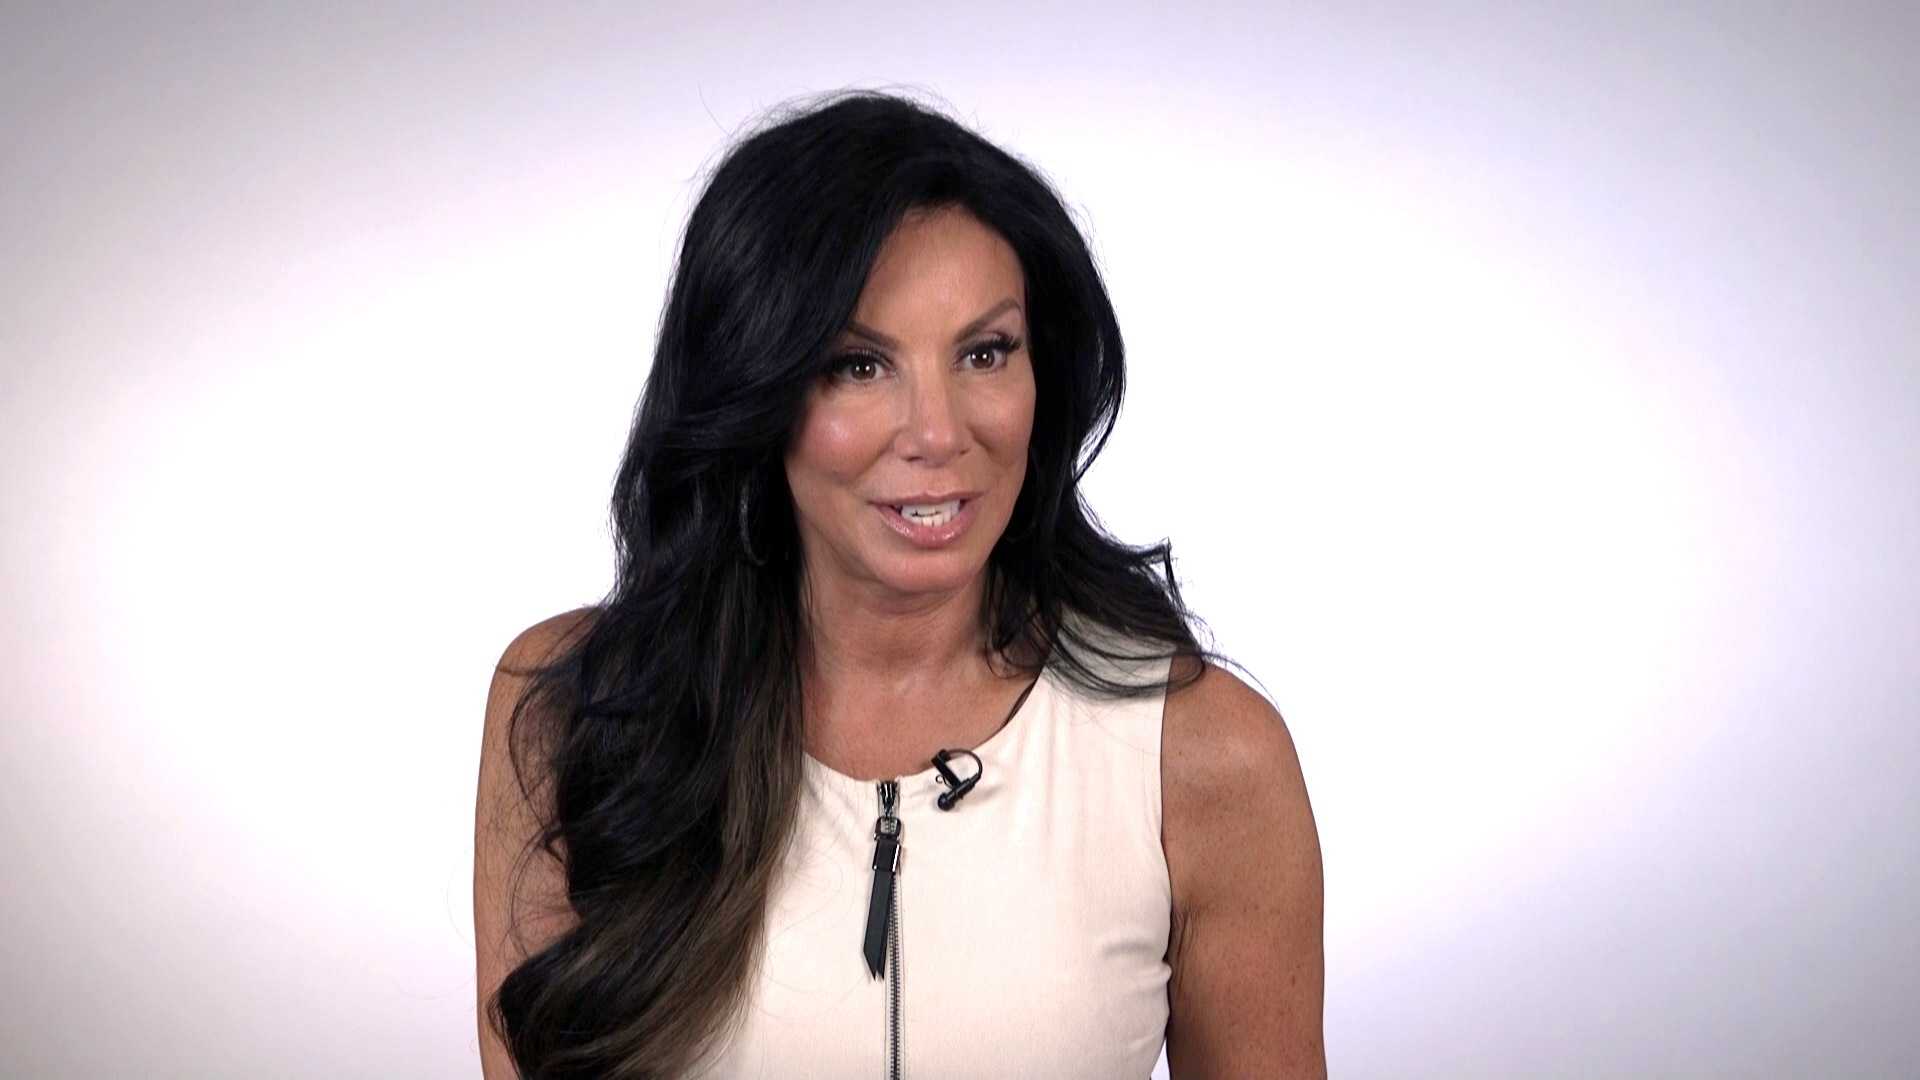 The Real Housewives Of New Jersey's Danielle Staub Wedding